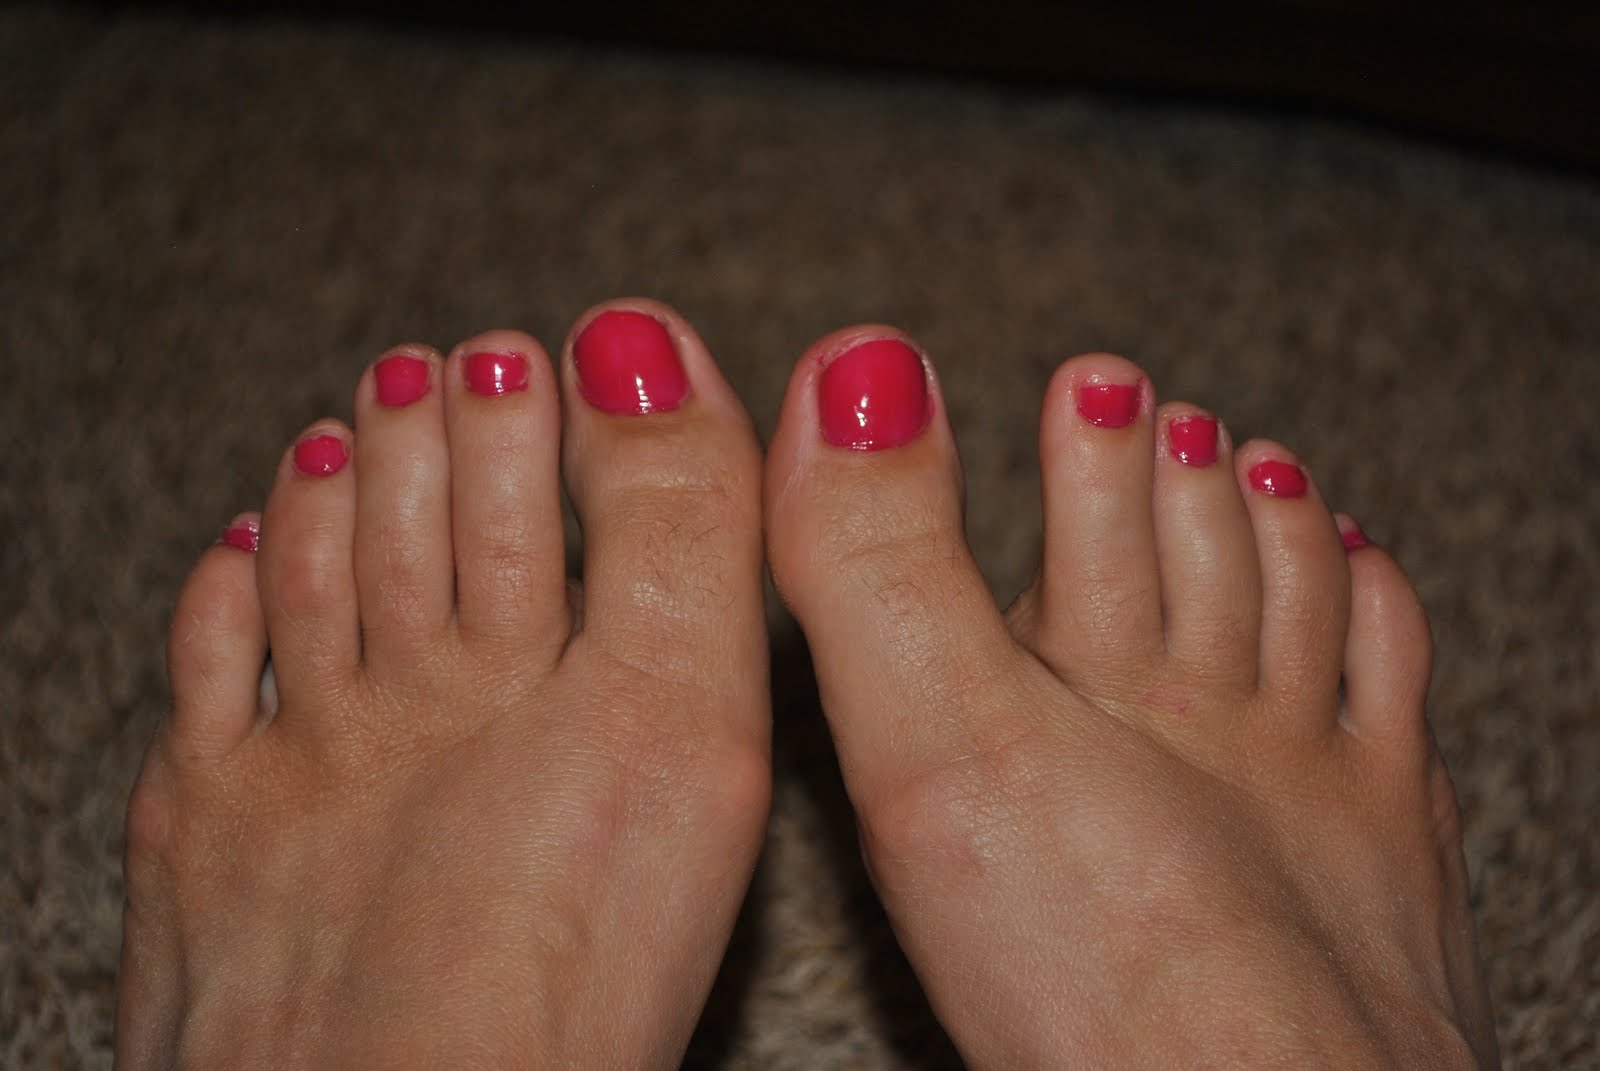 Tips for an at home pedicure